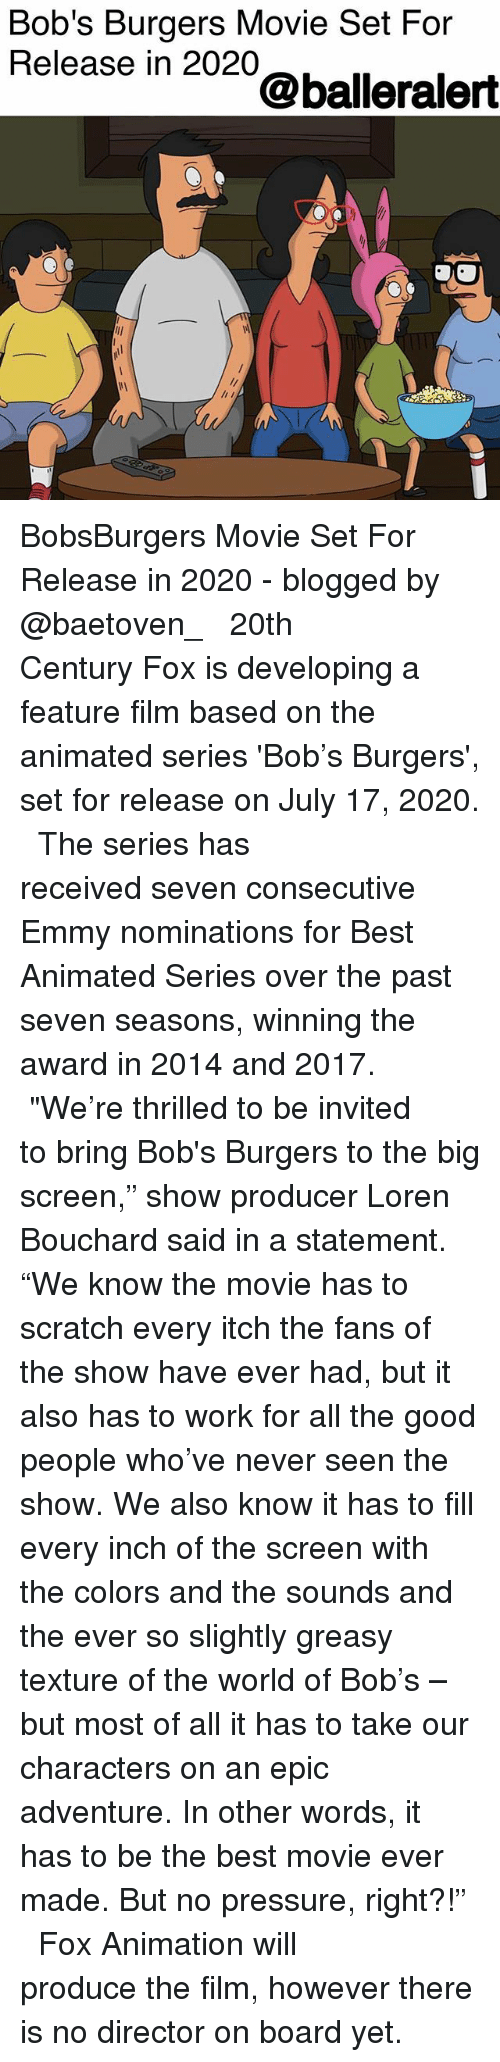 """Bob's Burgers: Bob's Burgers Movie Set For  Release in 2020  @balleralert BobsBurgers Movie Set For Release in 2020 - blogged by @baetoven_ ⠀⠀⠀⠀⠀⠀⠀ ⠀⠀⠀⠀⠀⠀⠀ 20th Century Fox is developing a feature film based on the animated series 'Bob's Burgers', set for release on July 17, 2020. ⠀⠀⠀⠀⠀⠀⠀ ⠀⠀⠀⠀⠀⠀⠀ The series has received seven consecutive Emmy nominations for Best Animated Series over the past seven seasons, winning the award in 2014 and 2017. ⠀⠀⠀⠀⠀⠀⠀ ⠀⠀⠀⠀⠀⠀⠀ """"We're thrilled to be invited to bring Bob's Burgers to the big screen,"""" show producer Loren Bouchard said in a statement. """"We know the movie has to scratch every itch the fans of the show have ever had, but it also has to work for all the good people who've never seen the show. We also know it has to fill every inch of the screen with the colors and the sounds and the ever so slightly greasy texture of the world of Bob's – but most of all it has to take our characters on an epic adventure. In other words, it has to be the best movie ever made. But no pressure, right?!"""" ⠀⠀⠀⠀⠀⠀⠀ ⠀⠀⠀⠀⠀⠀⠀ Fox Animation will produce the film, however there is no director on board yet."""